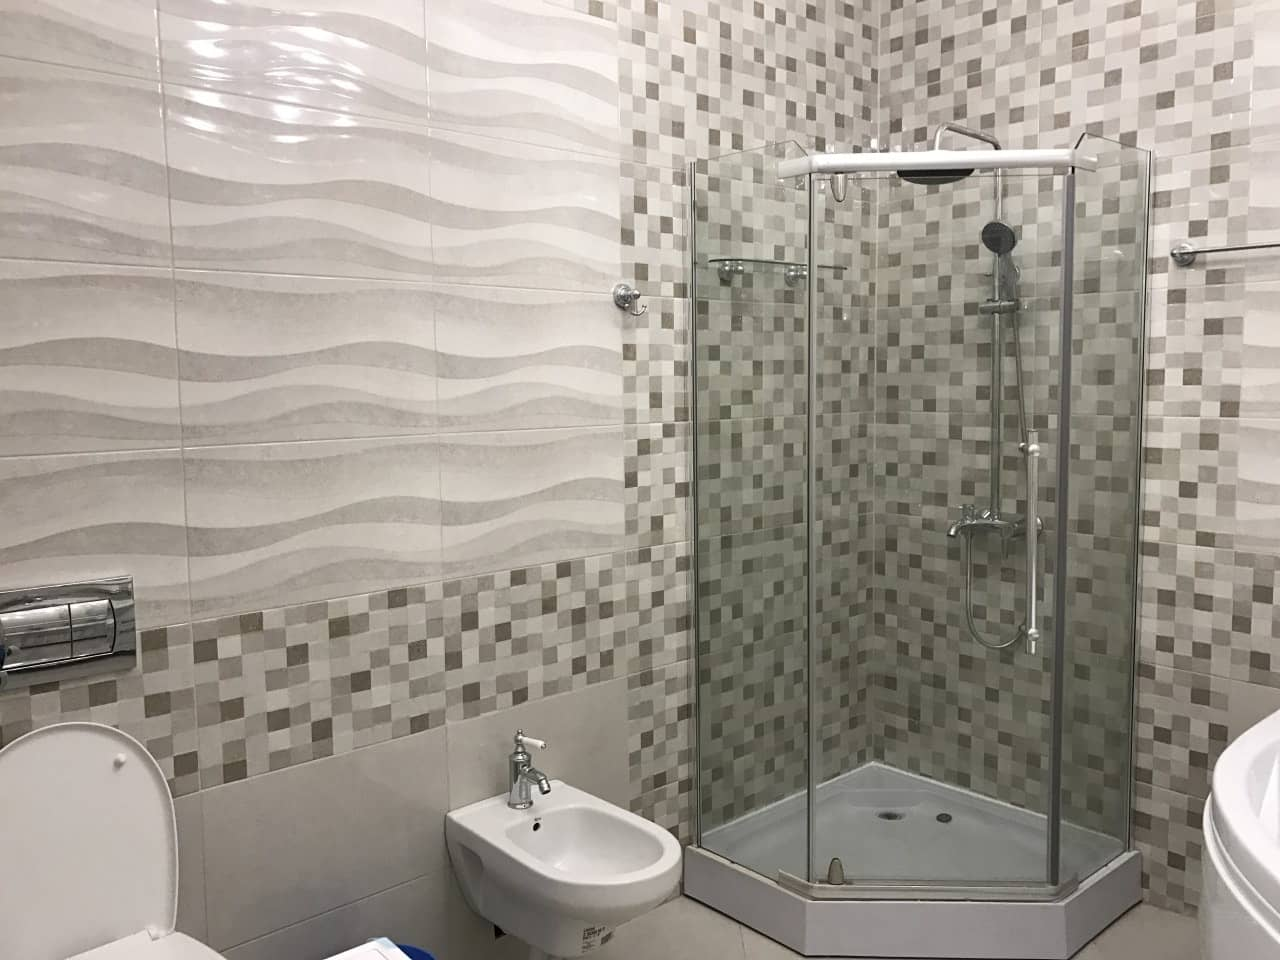 Top 15 Common Mistakes during Bathroom Renovations. Textured tile and mosaic